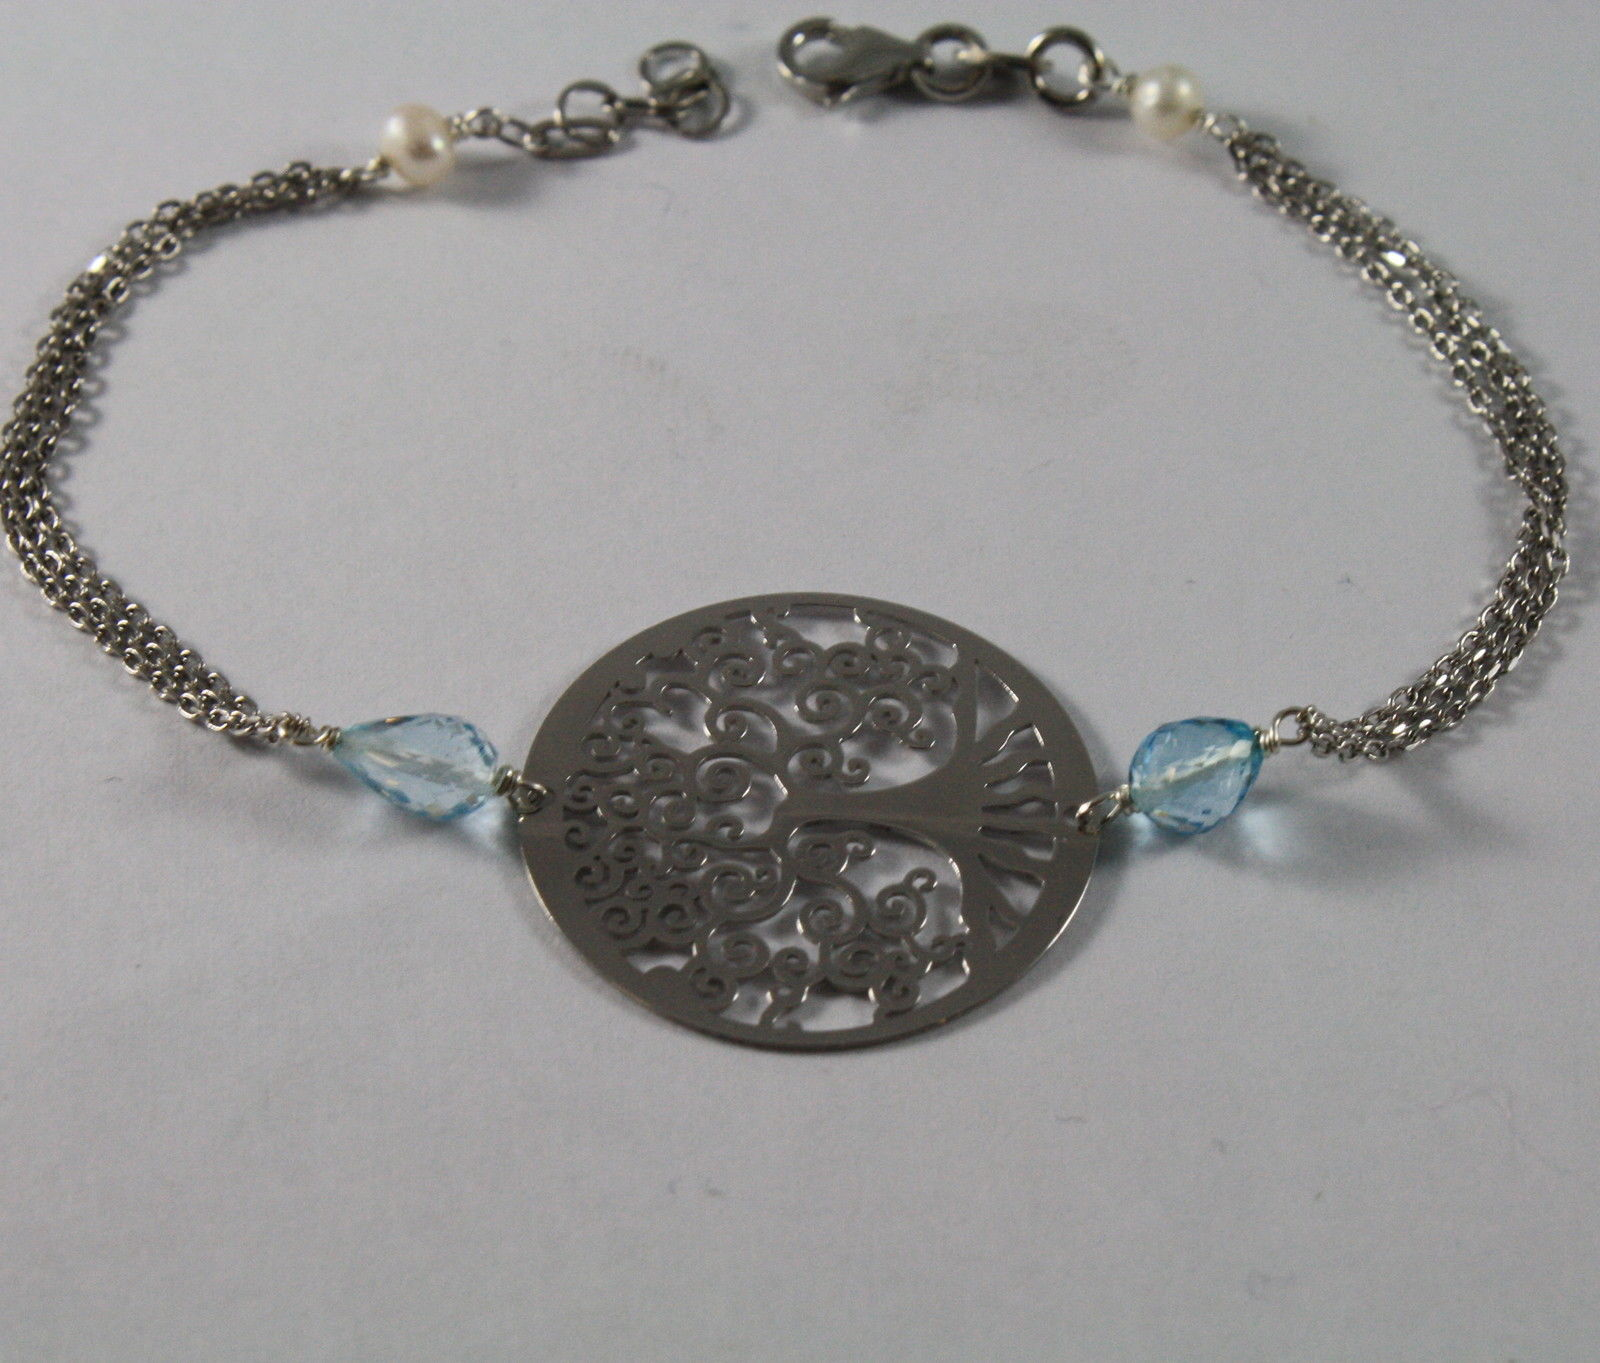 925 Silver Bangle with Blue Topaz, White Pearls and Tree of Life